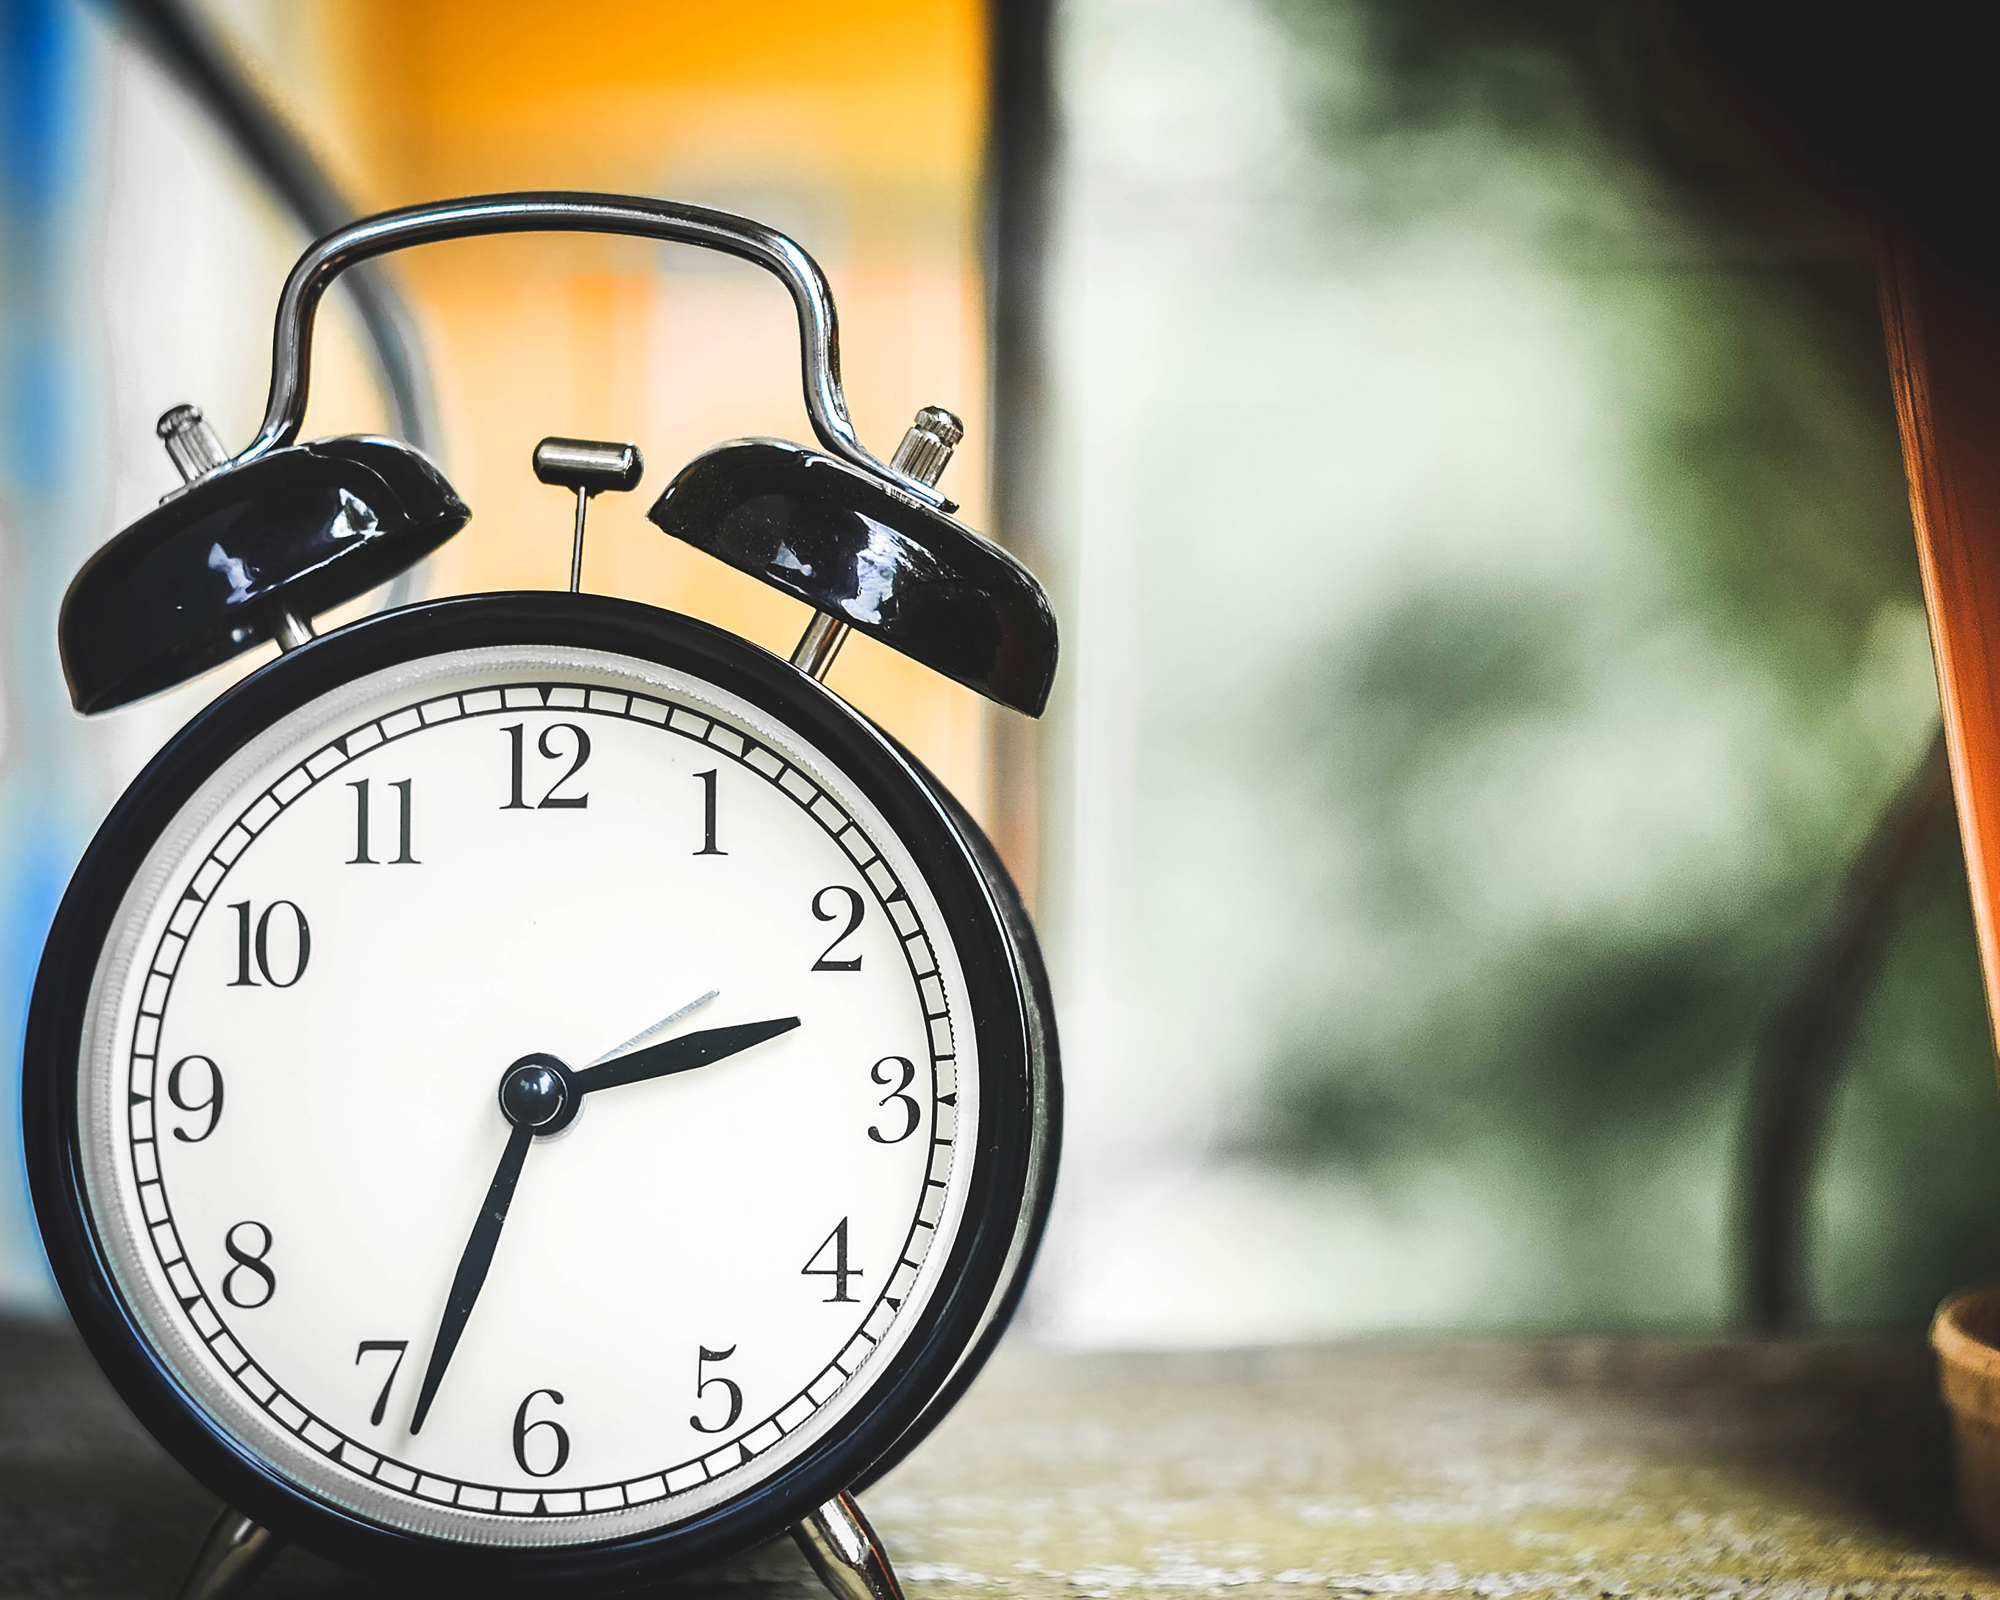 7 Super Easy Ways to Find Time to Write Your Book